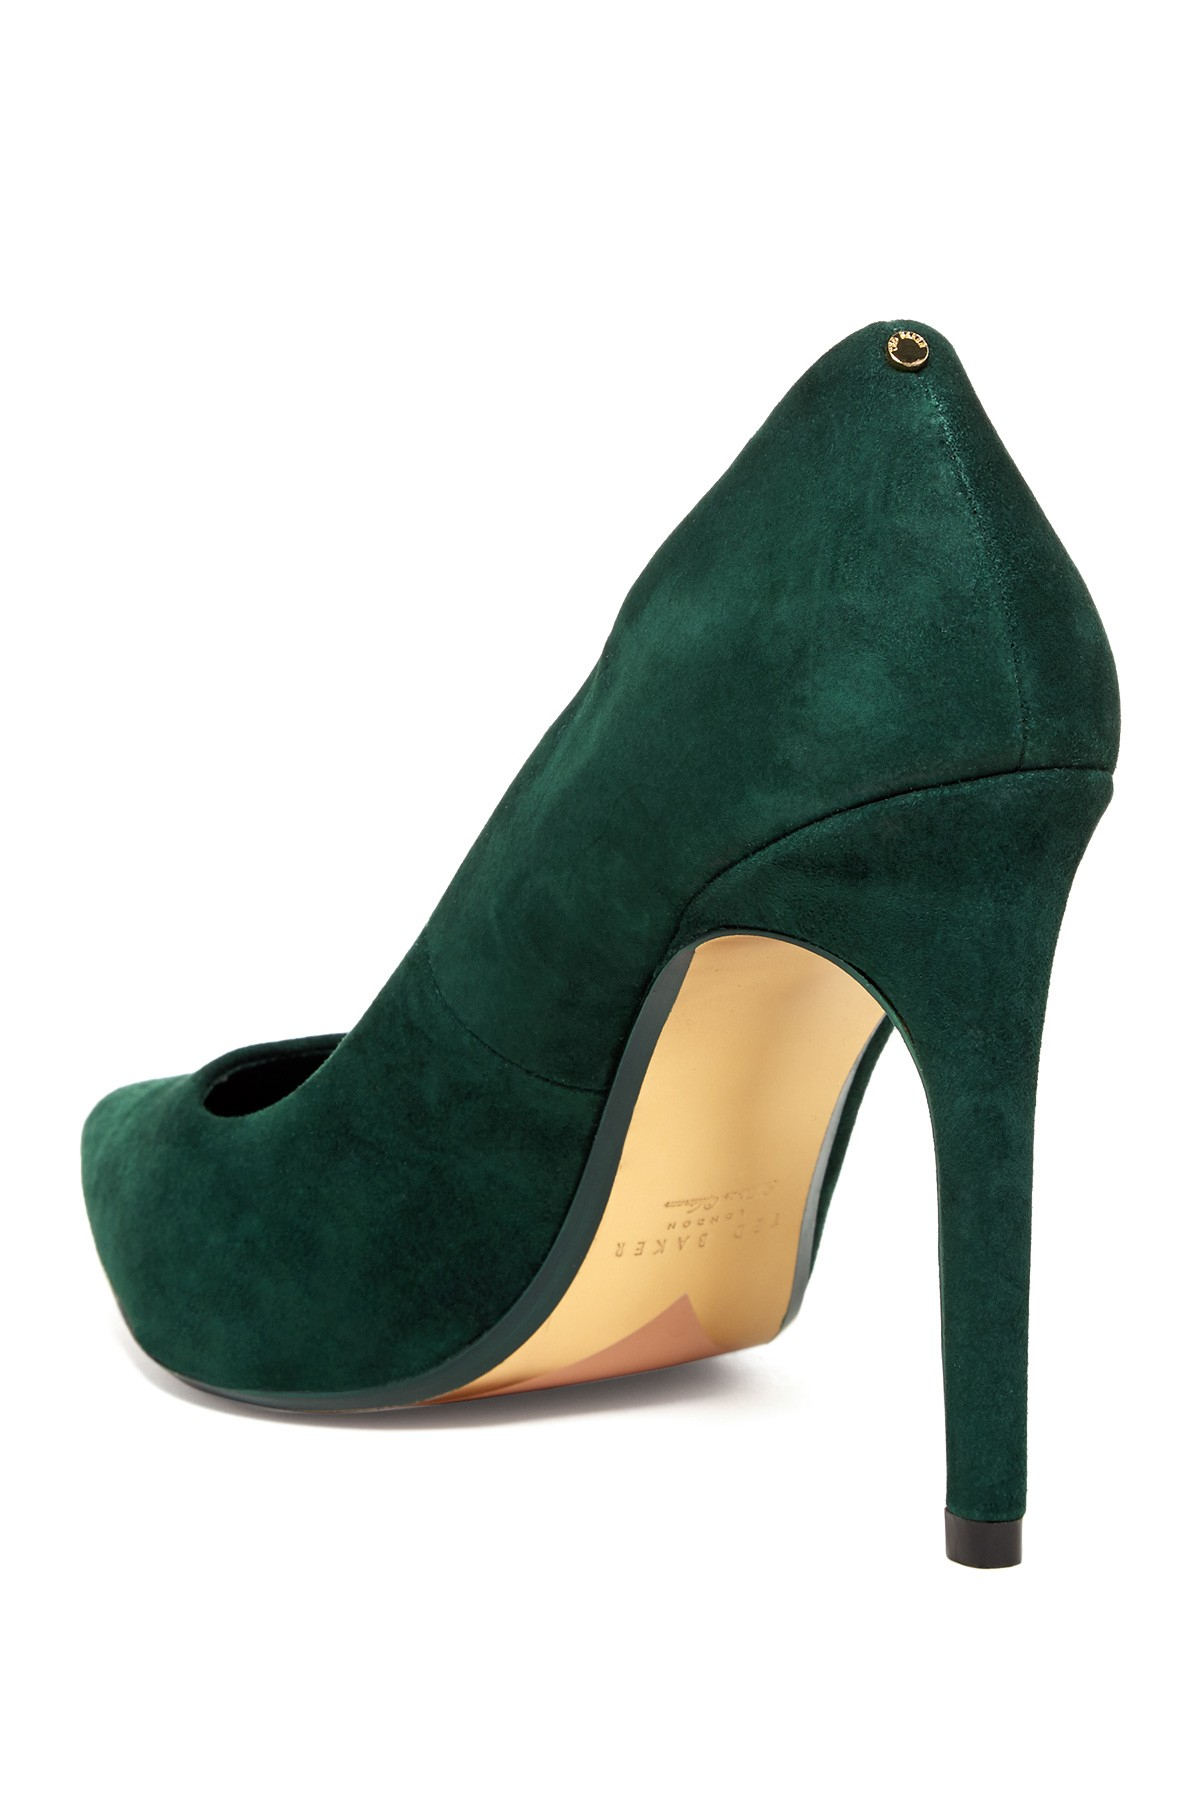 7e21081b1c5fb Gallery. Previously sold at  Nordstrom Rack · Women s Pointed Toe Pumps